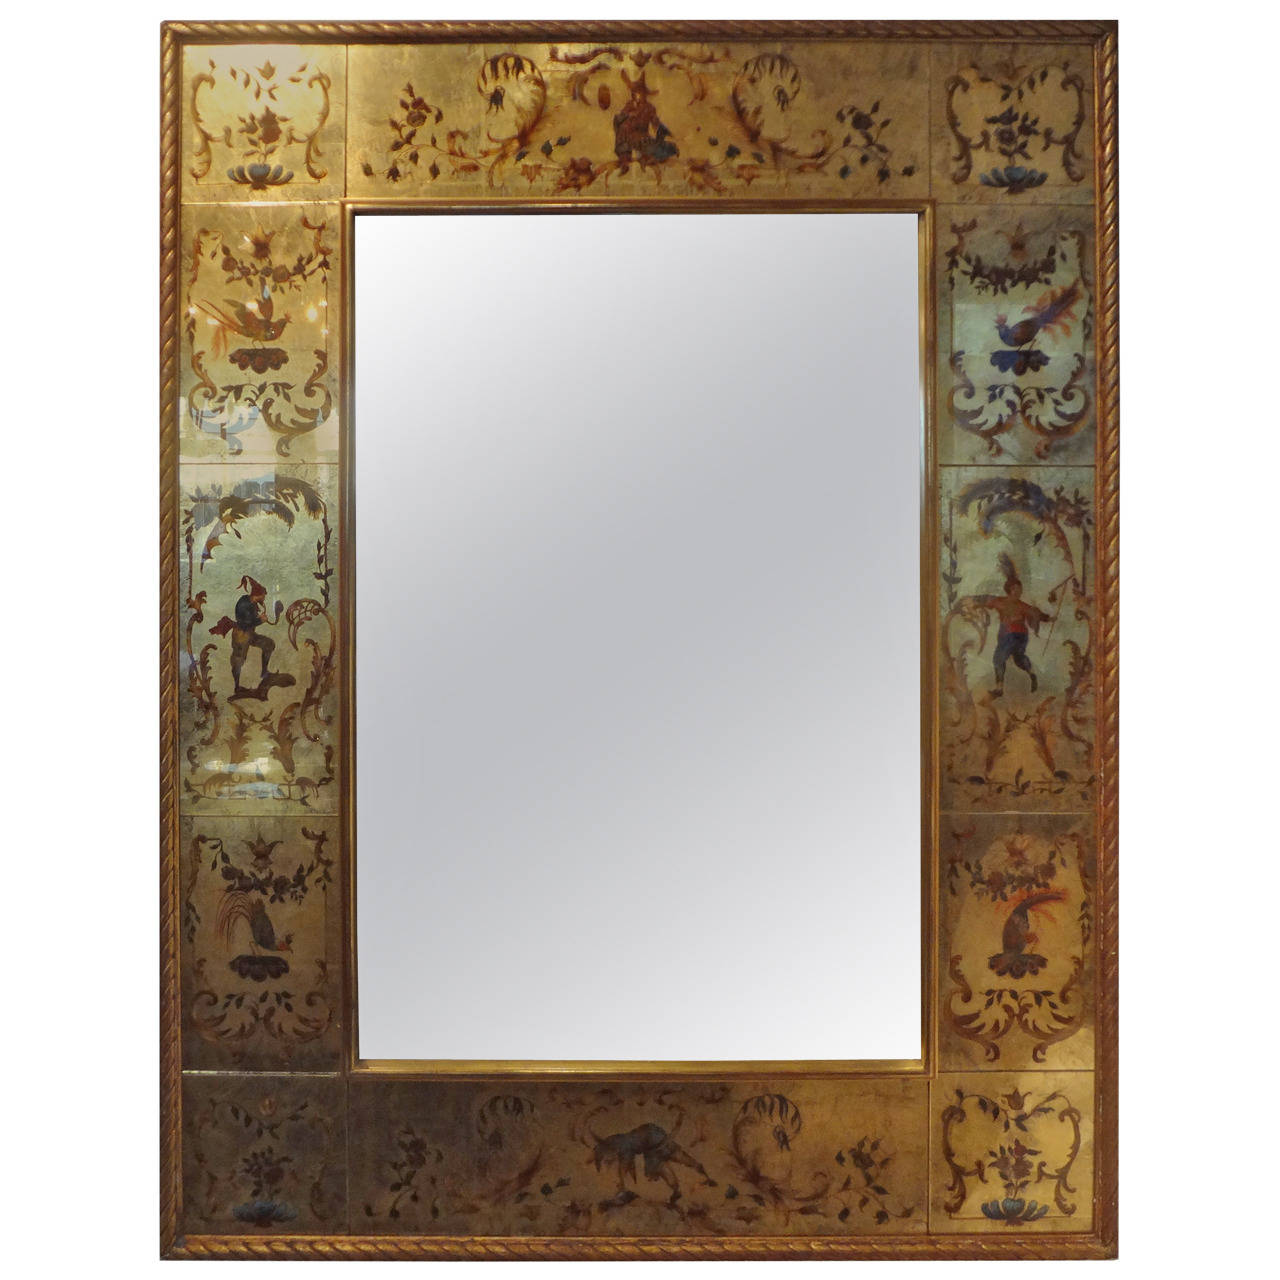 French Maison Jansen Style Verre Églomisé Mirror, 1940s | From a unique collection of antique and modern wall mirrors at https://www.1stdibs.com/furniture/mirrors/wall-mirrors/